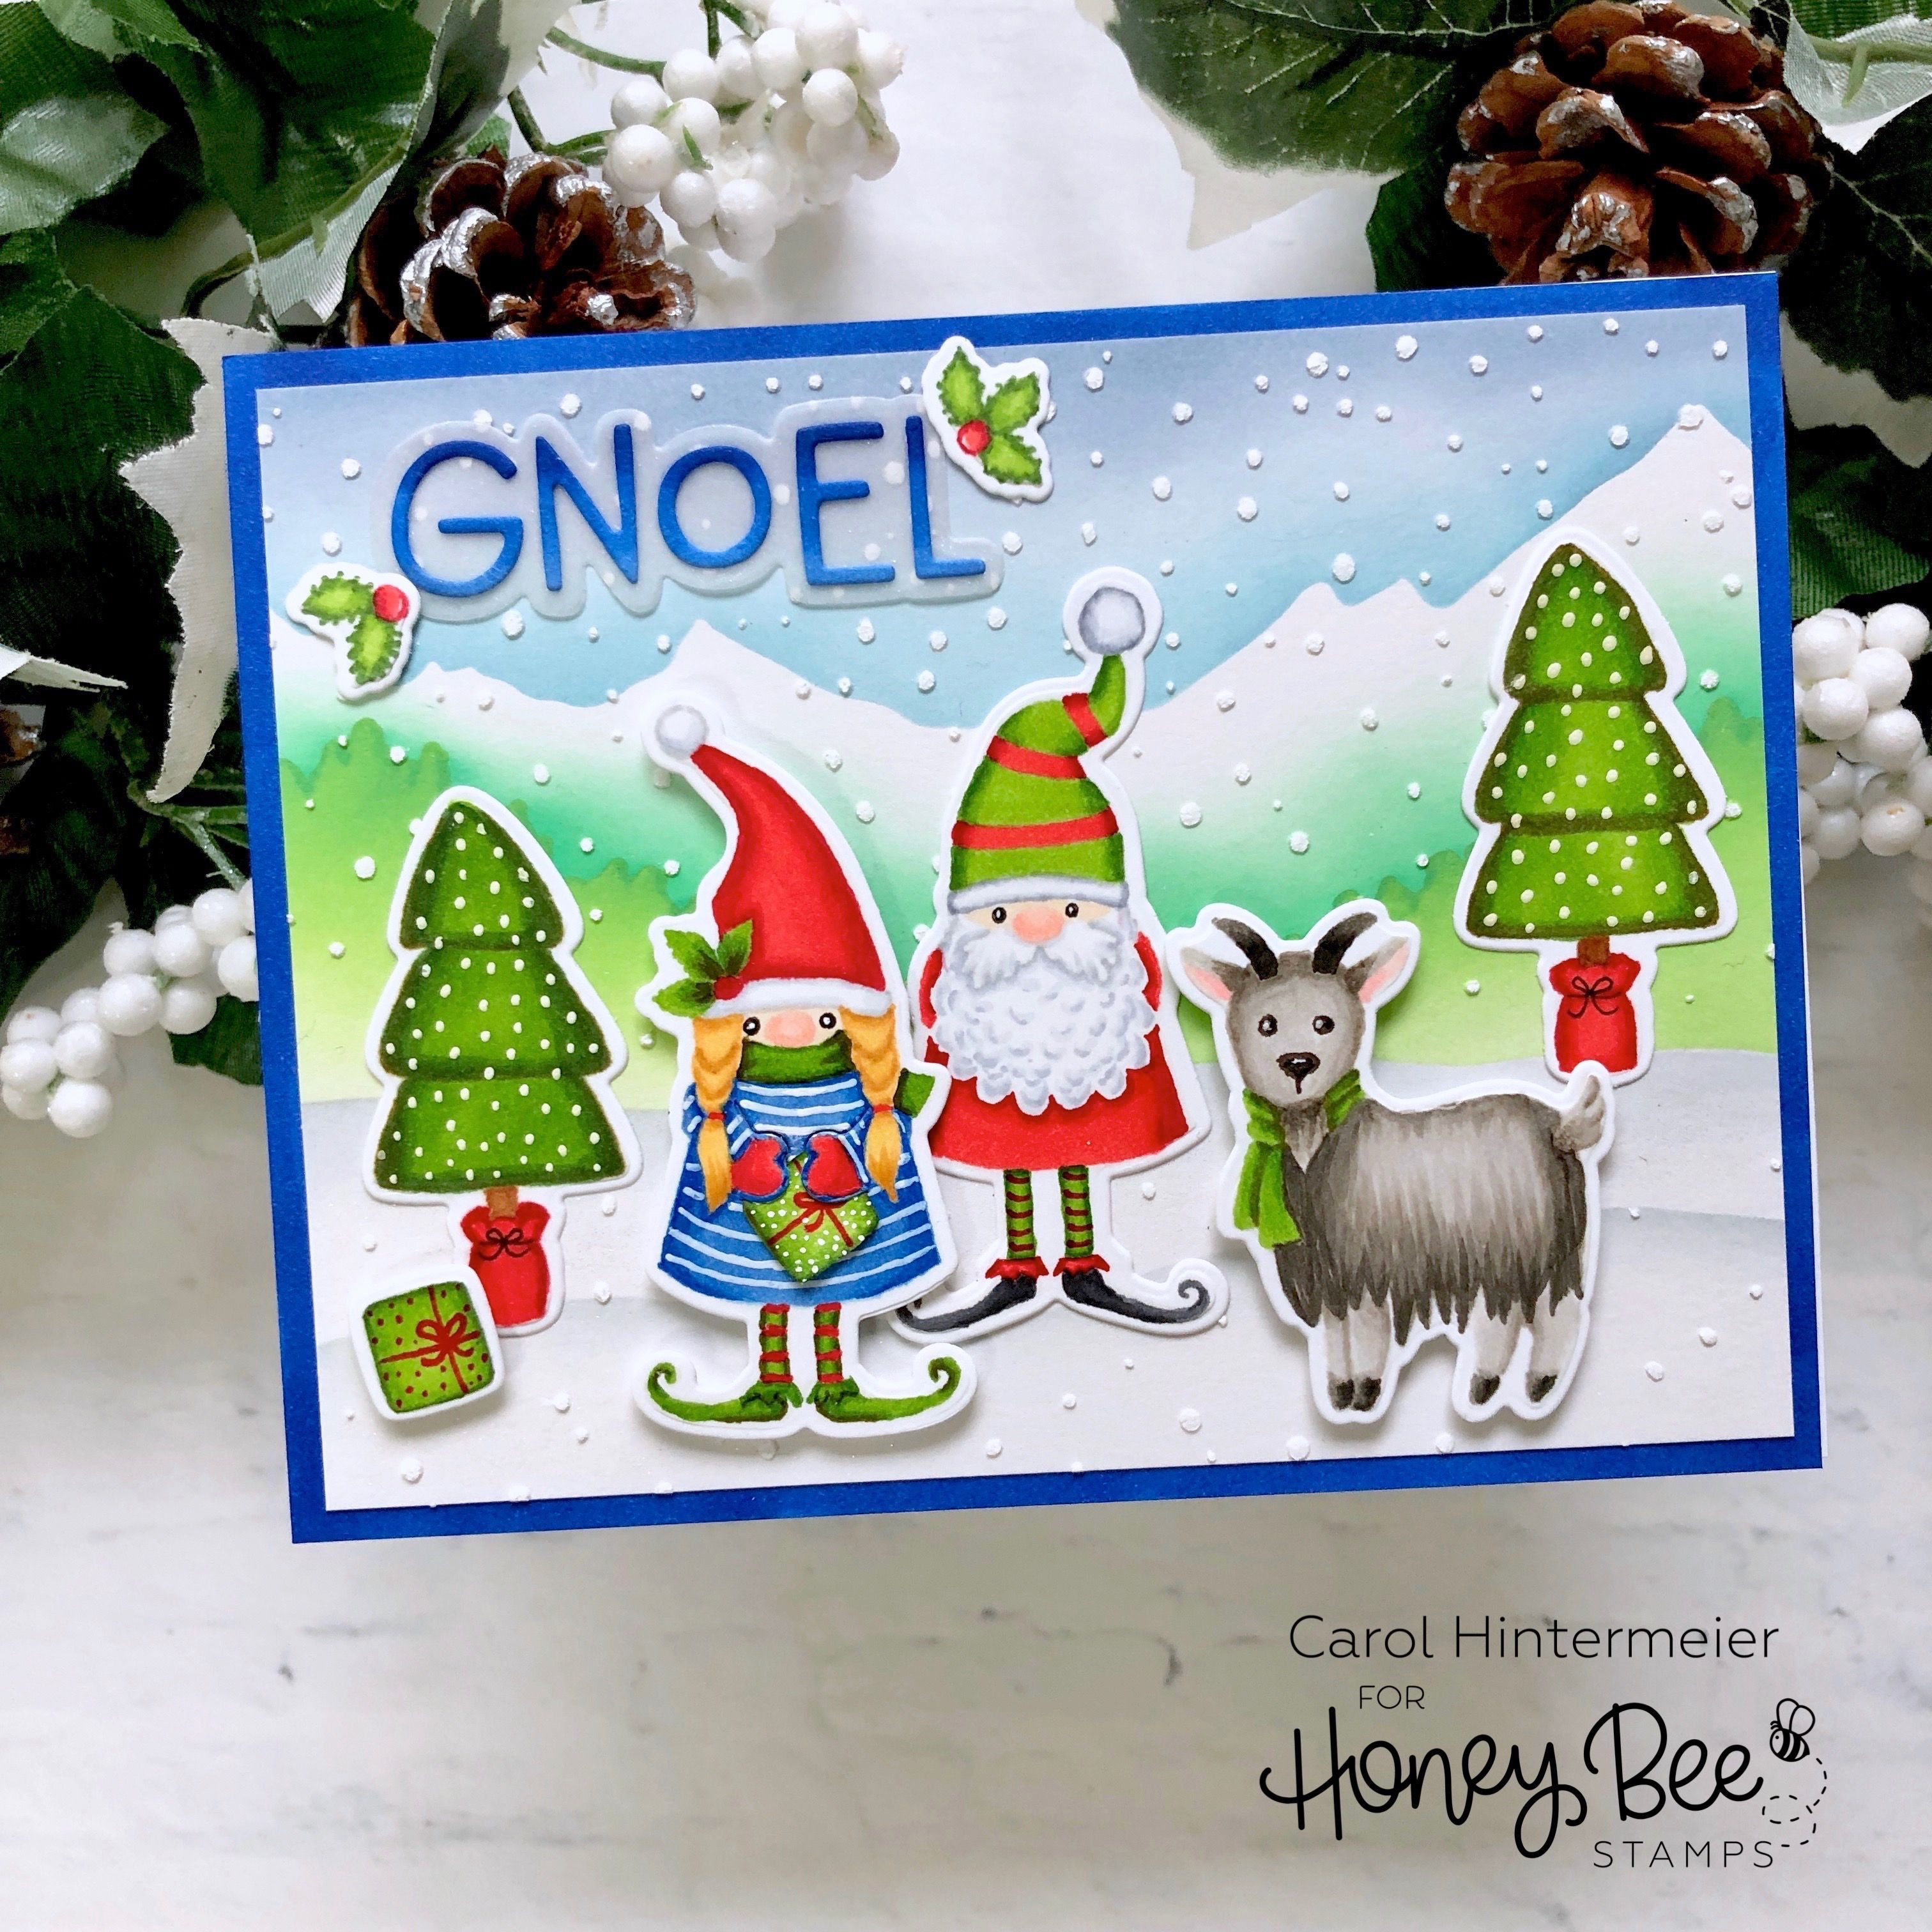 Gnoel Winter Holiday Card In 2020 Honey Bee Stamps Bee Cards Christmas Cards Handmade